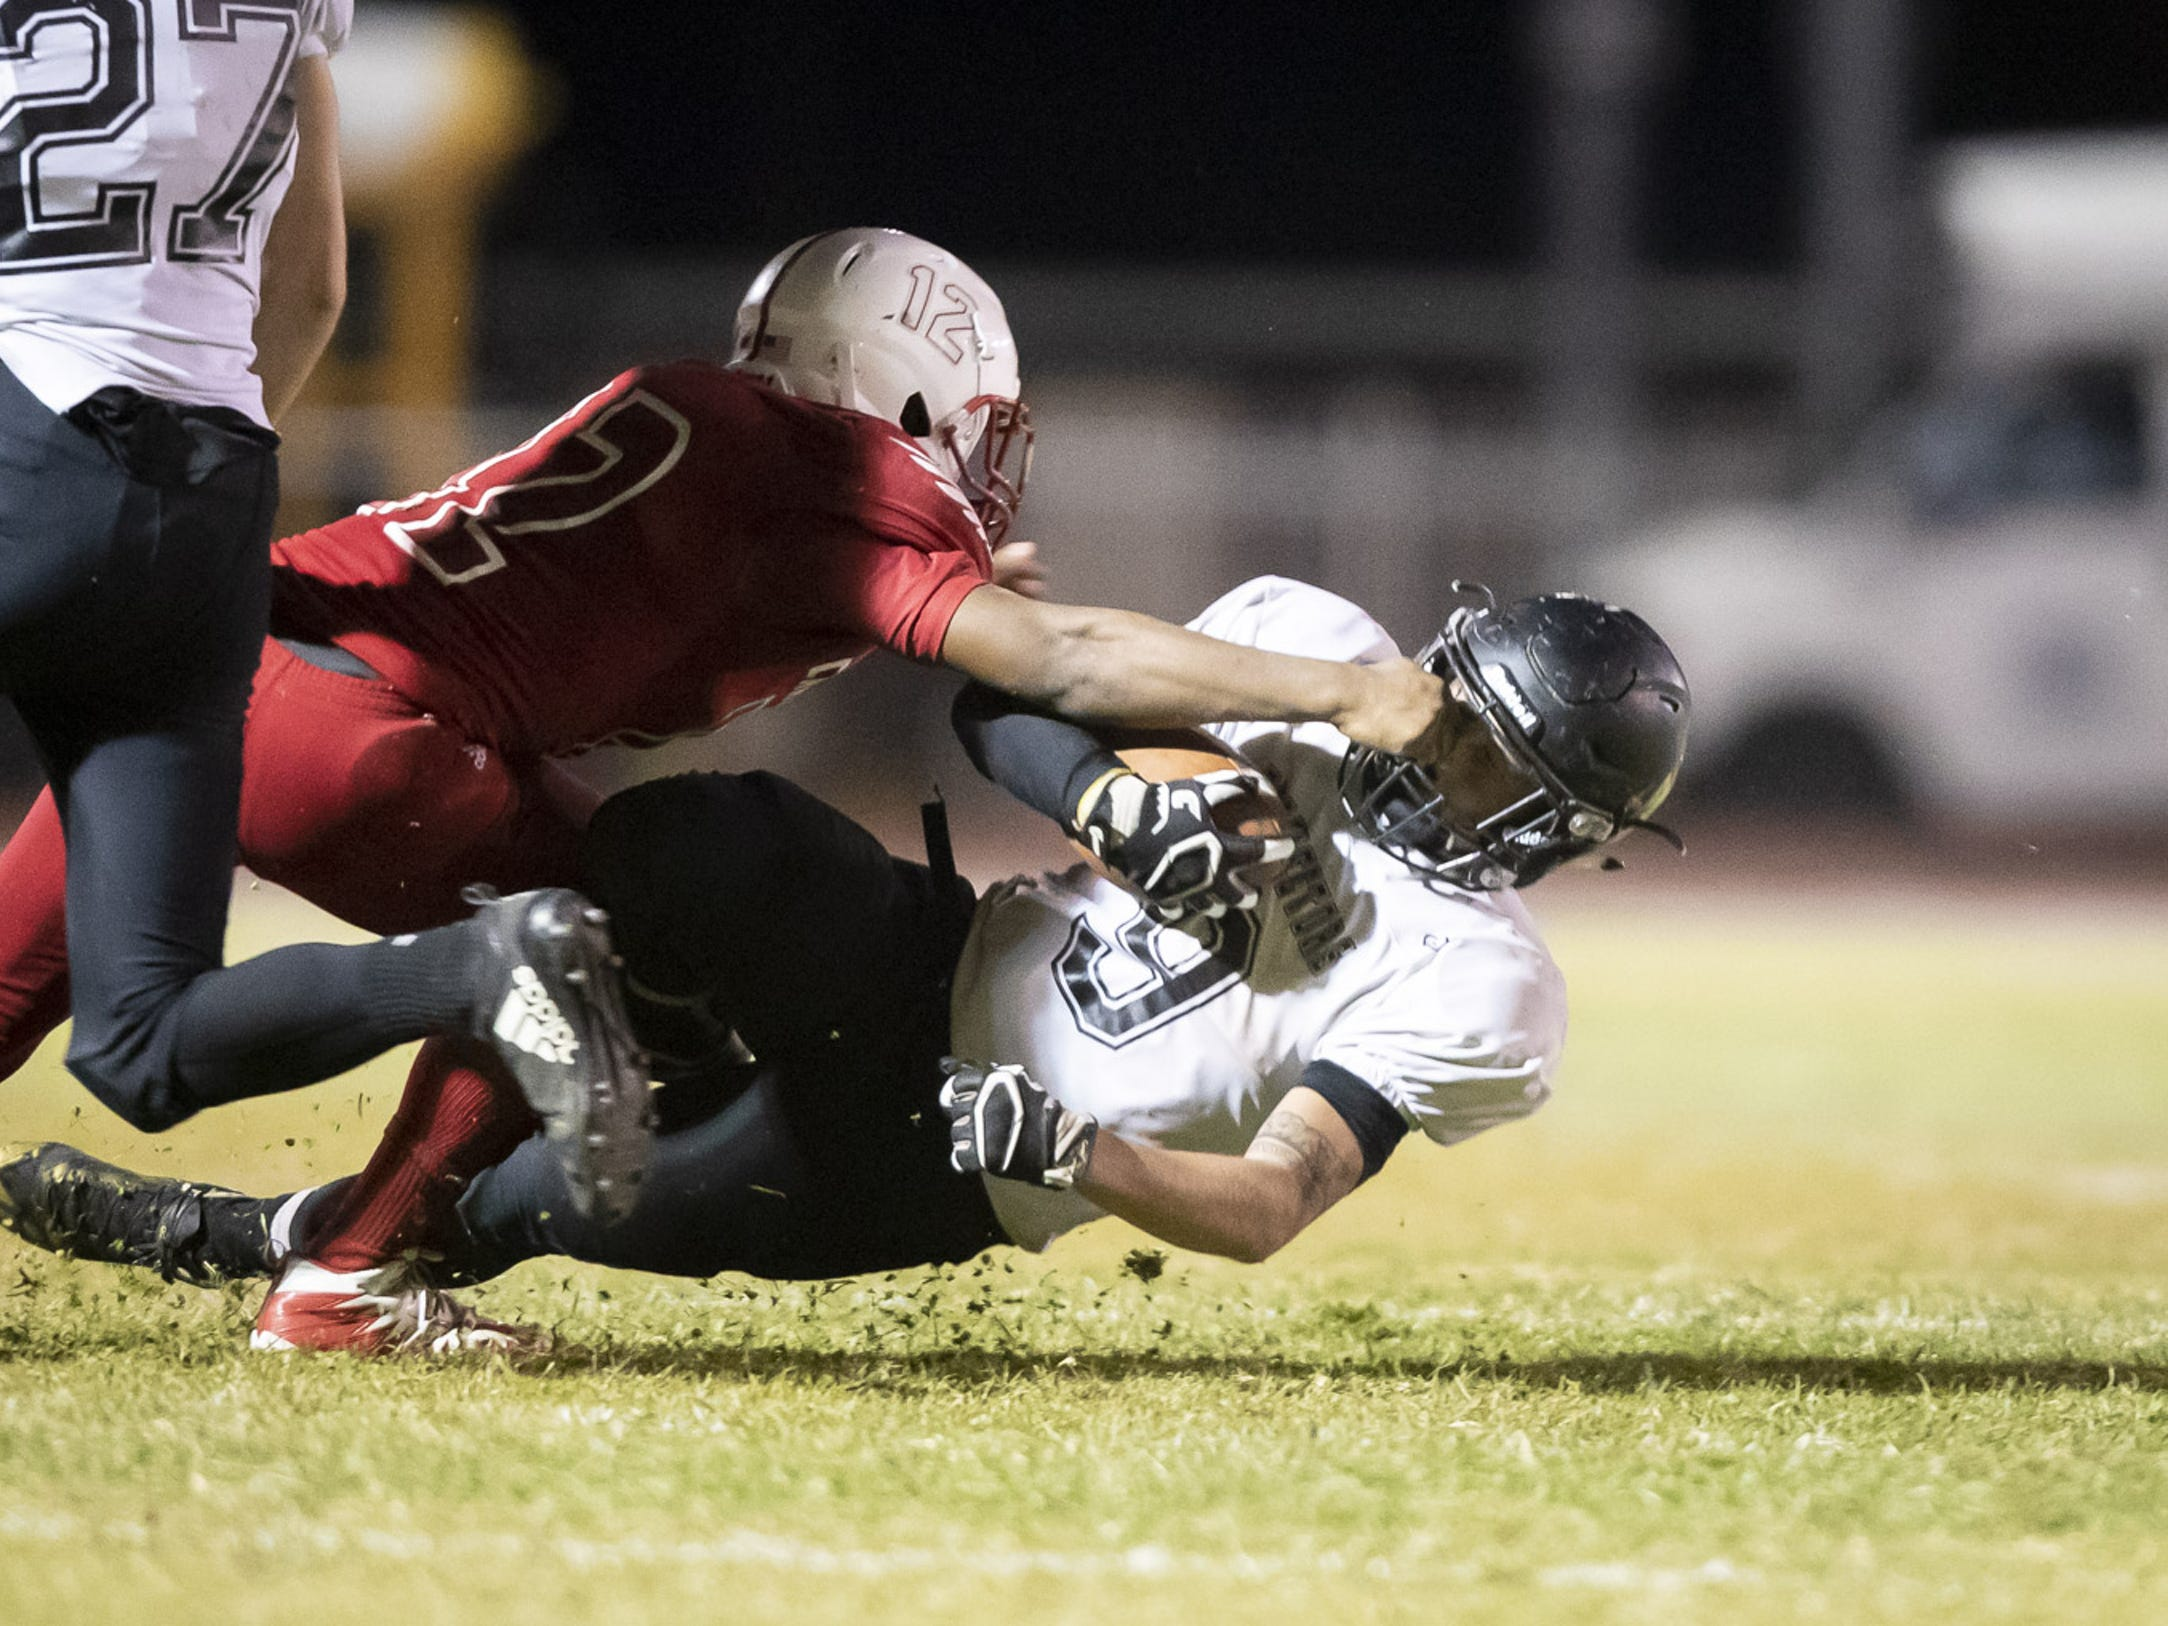 Junior cornerback Dimitri Taylor (12) of the Glendale Cardinals grabs the face mask of senior running back William Lohman (9) of the Apache Junction Prospectors at Glendale High School on Friday, October 19, 2018 in Glendale, Arizona. #azhsfb